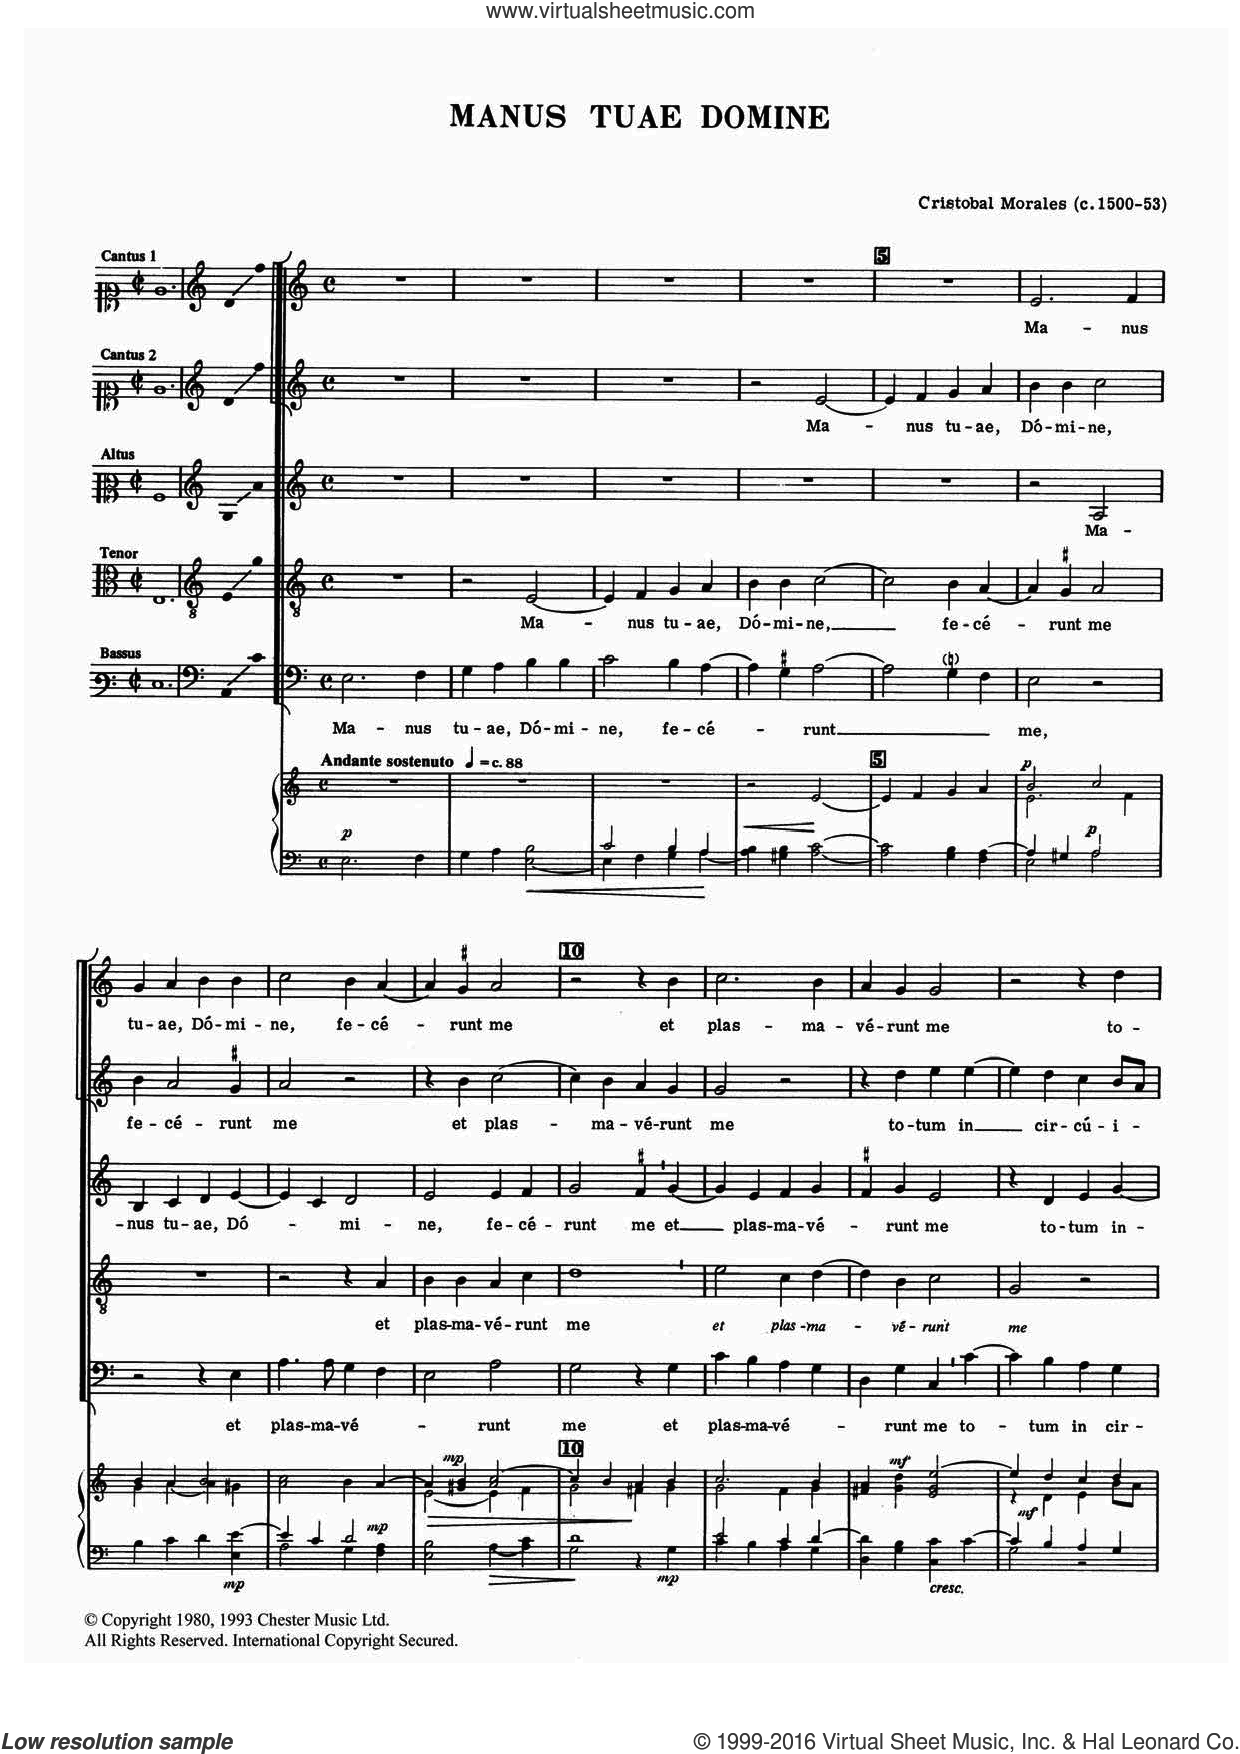 Manus Tuae Domine sheet music for voice, piano or guitar by Cristobal Morales, classical score, intermediate